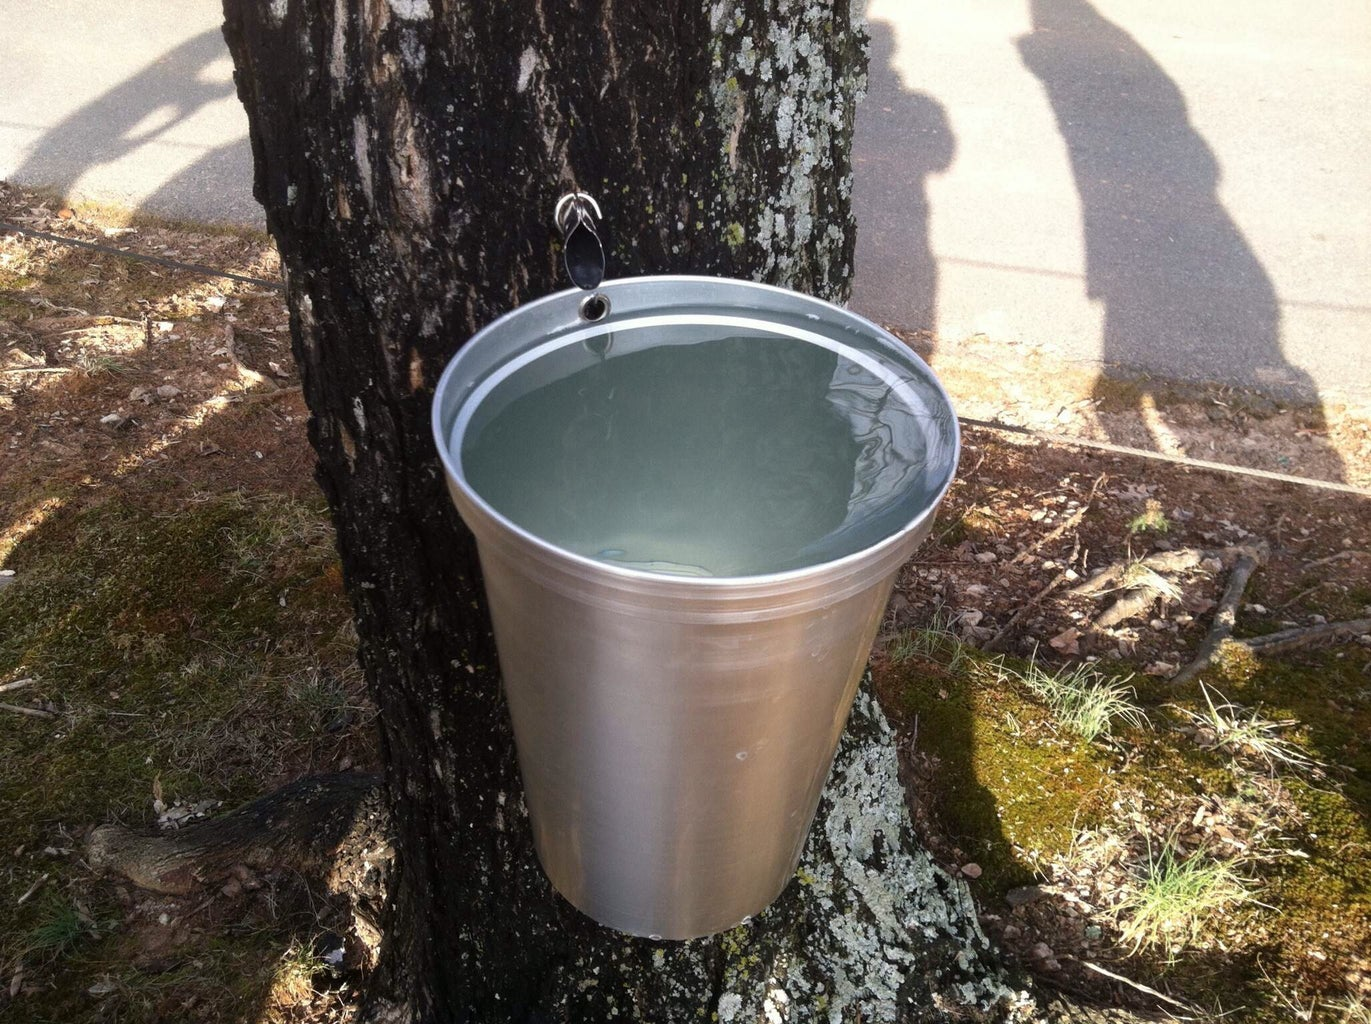 Making Maple Syrup at School: a Project for Teachers